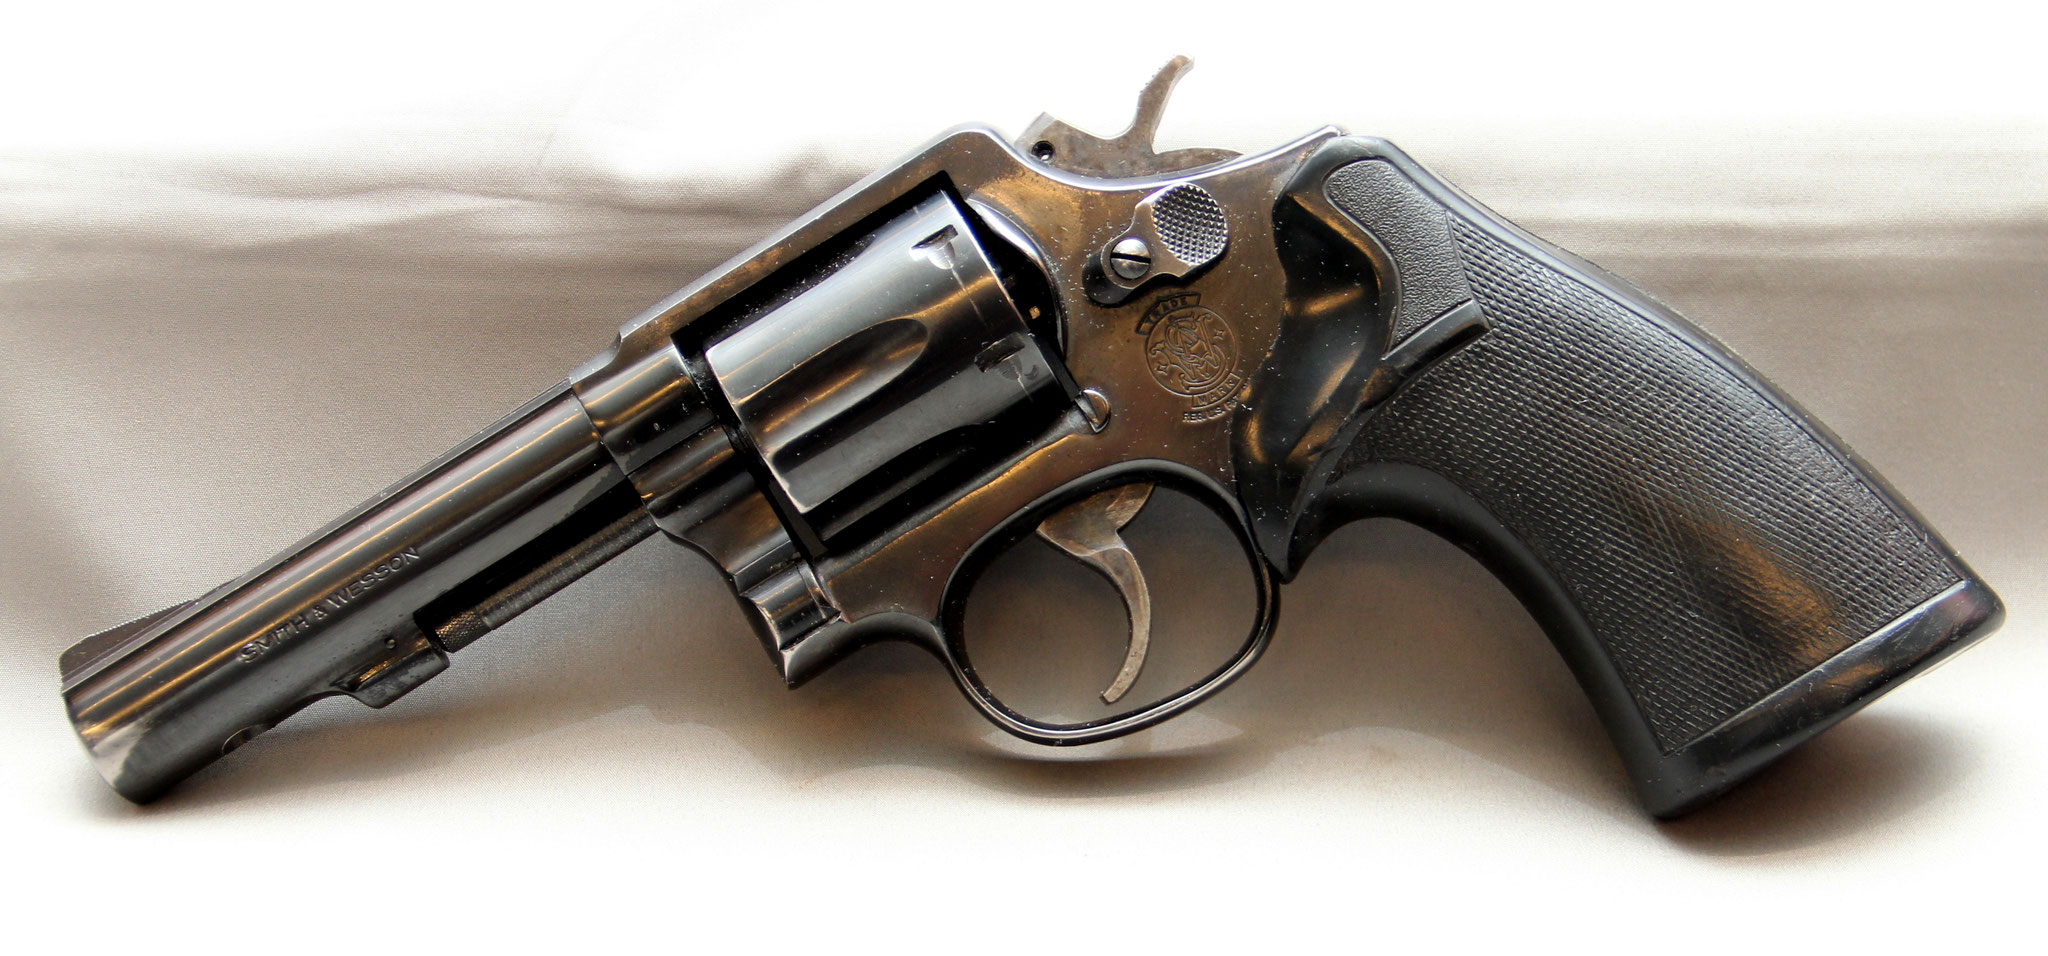 Smith & Wesson 13-3, police, No.: AUL8422. € 450,-